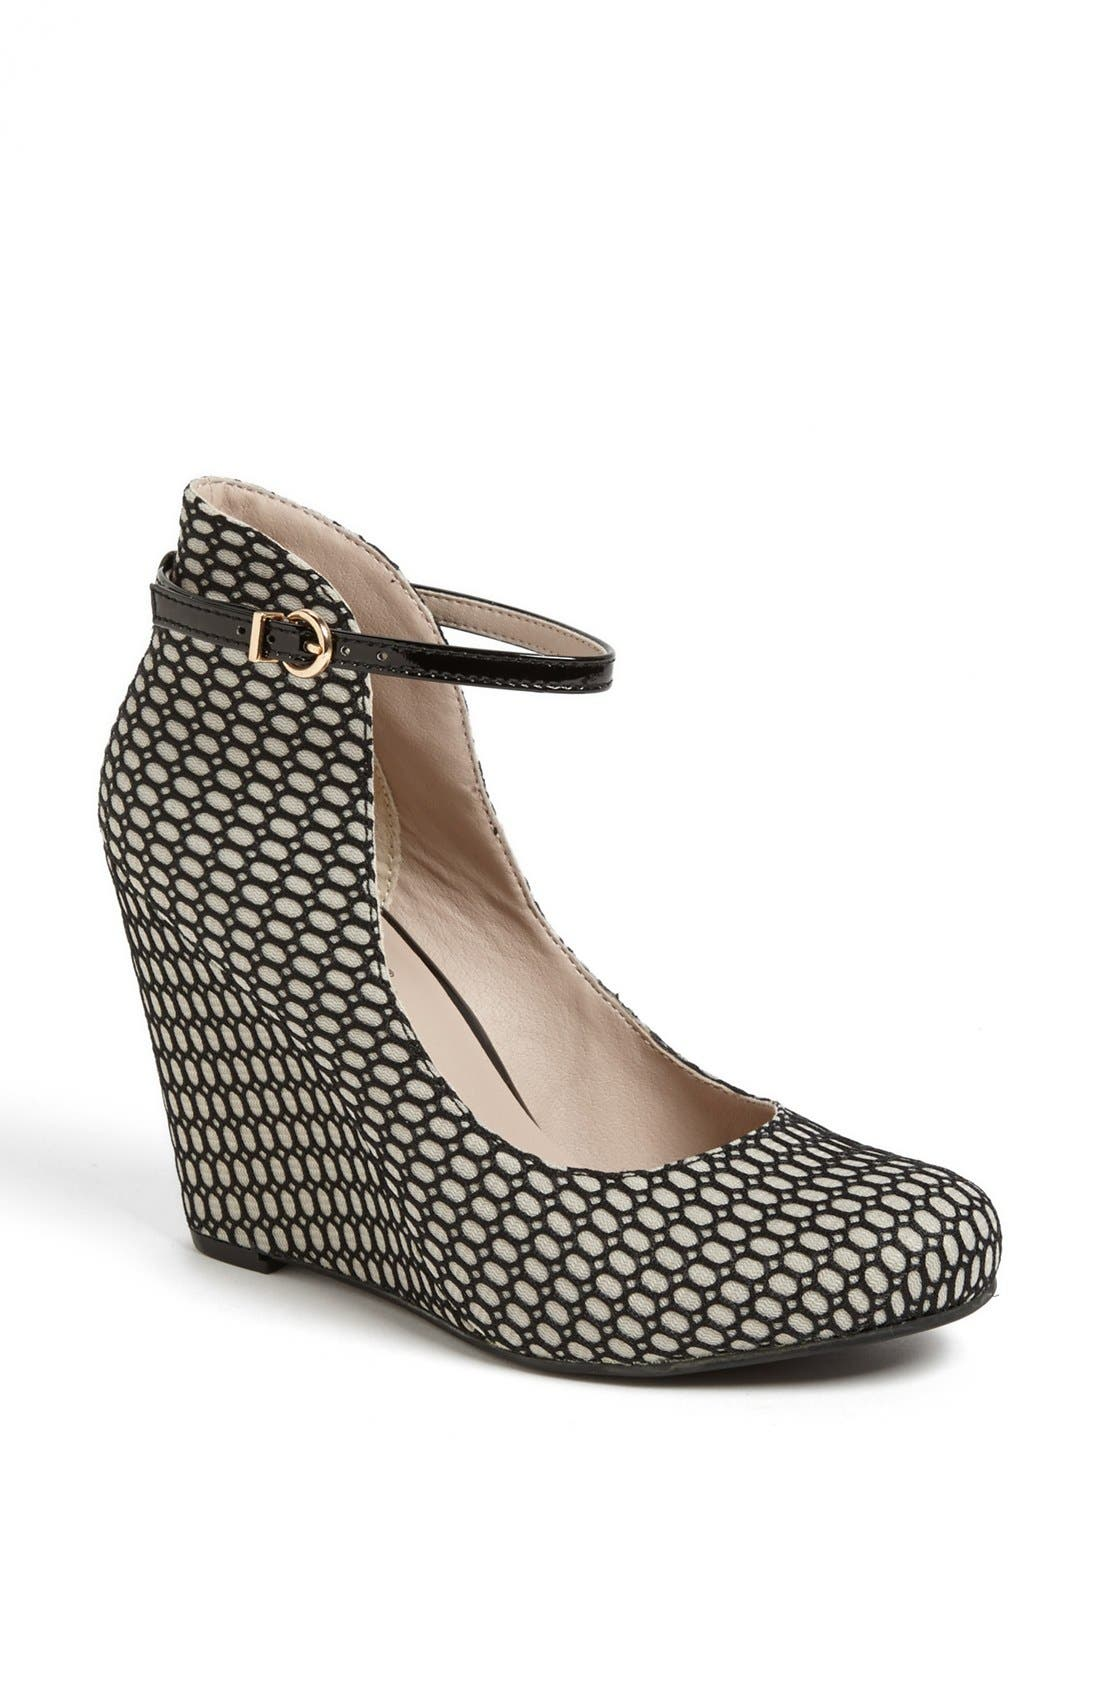 Alternate Image 1 Selected - Seychelles 'Dynamite' Fishnet Overlay Pump